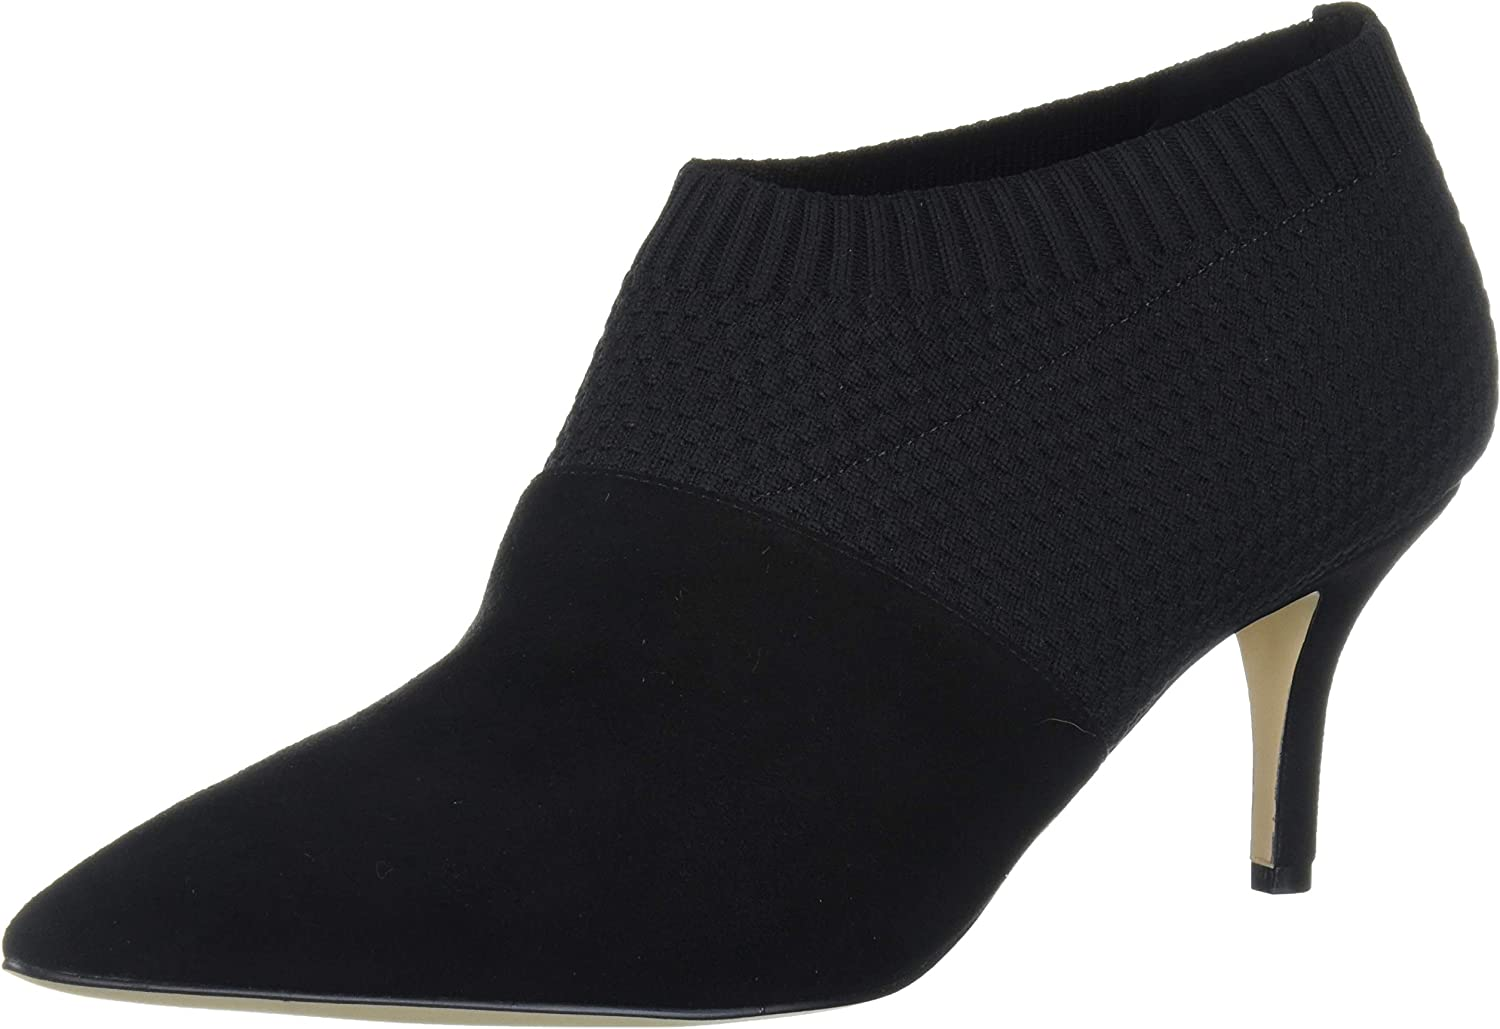 Selling New product! New type and selling Cole Haan Women's Vanna Wr Shootie Pump 65mm